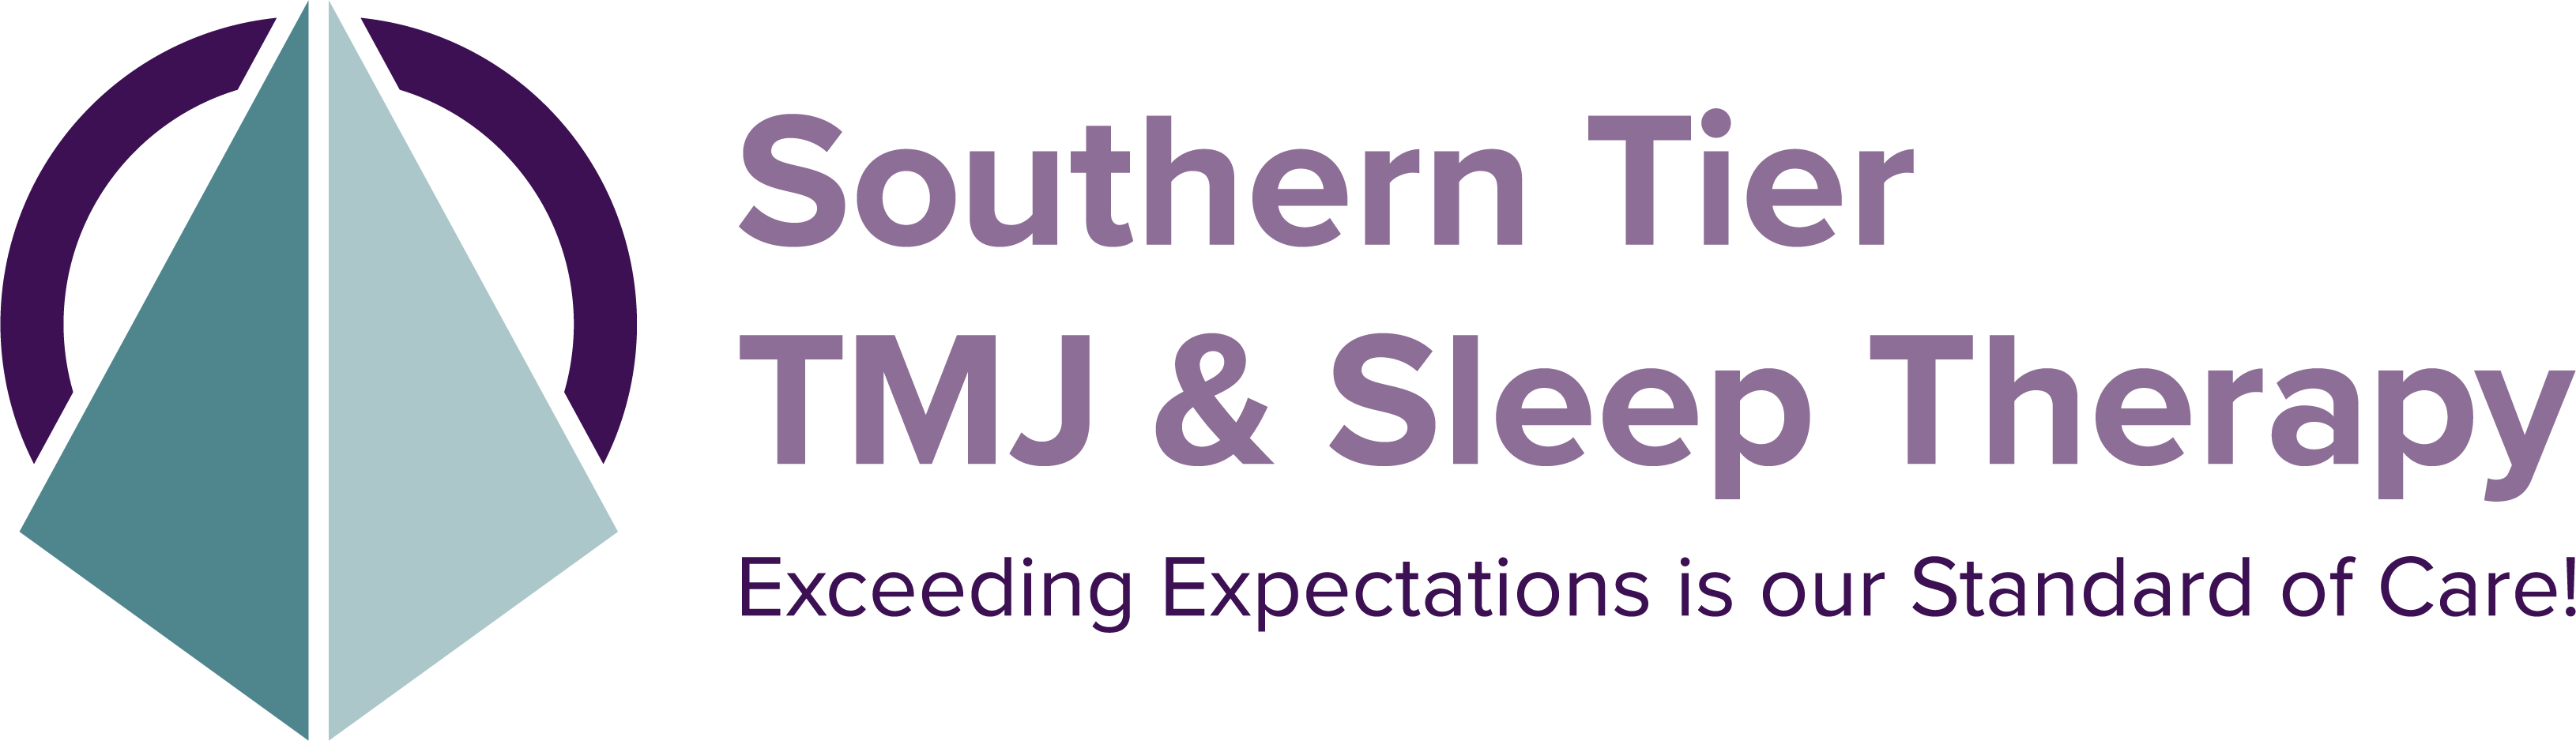 Southern Tier TMJ & Sleep Therapy